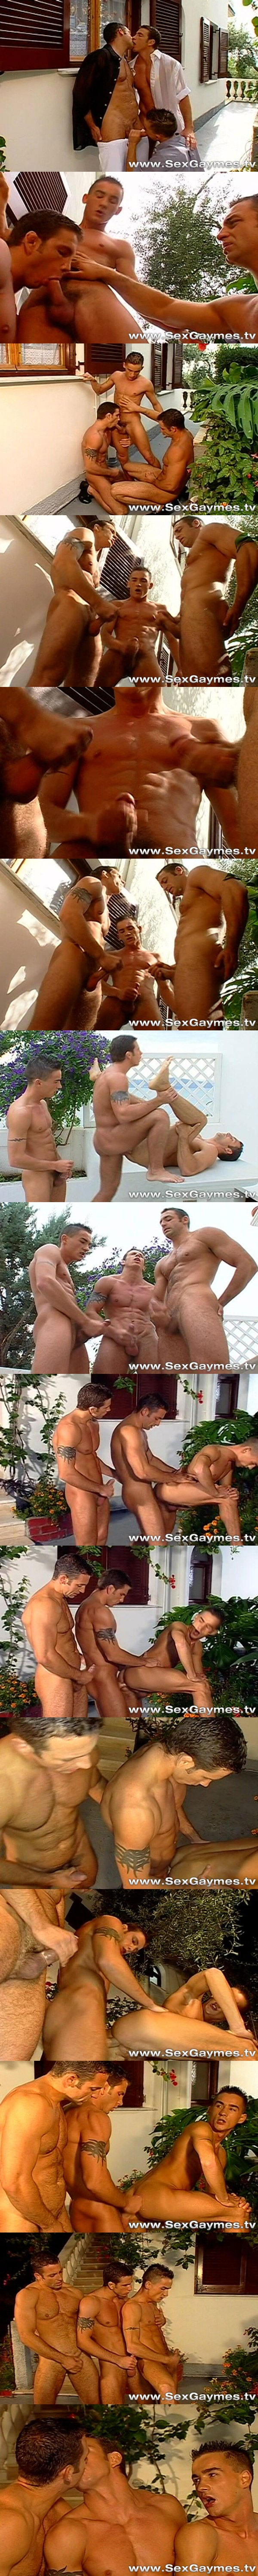 Renato Bellagio, Tim Brensen & Sergio Foster euro threeway at Sexgaymes 02